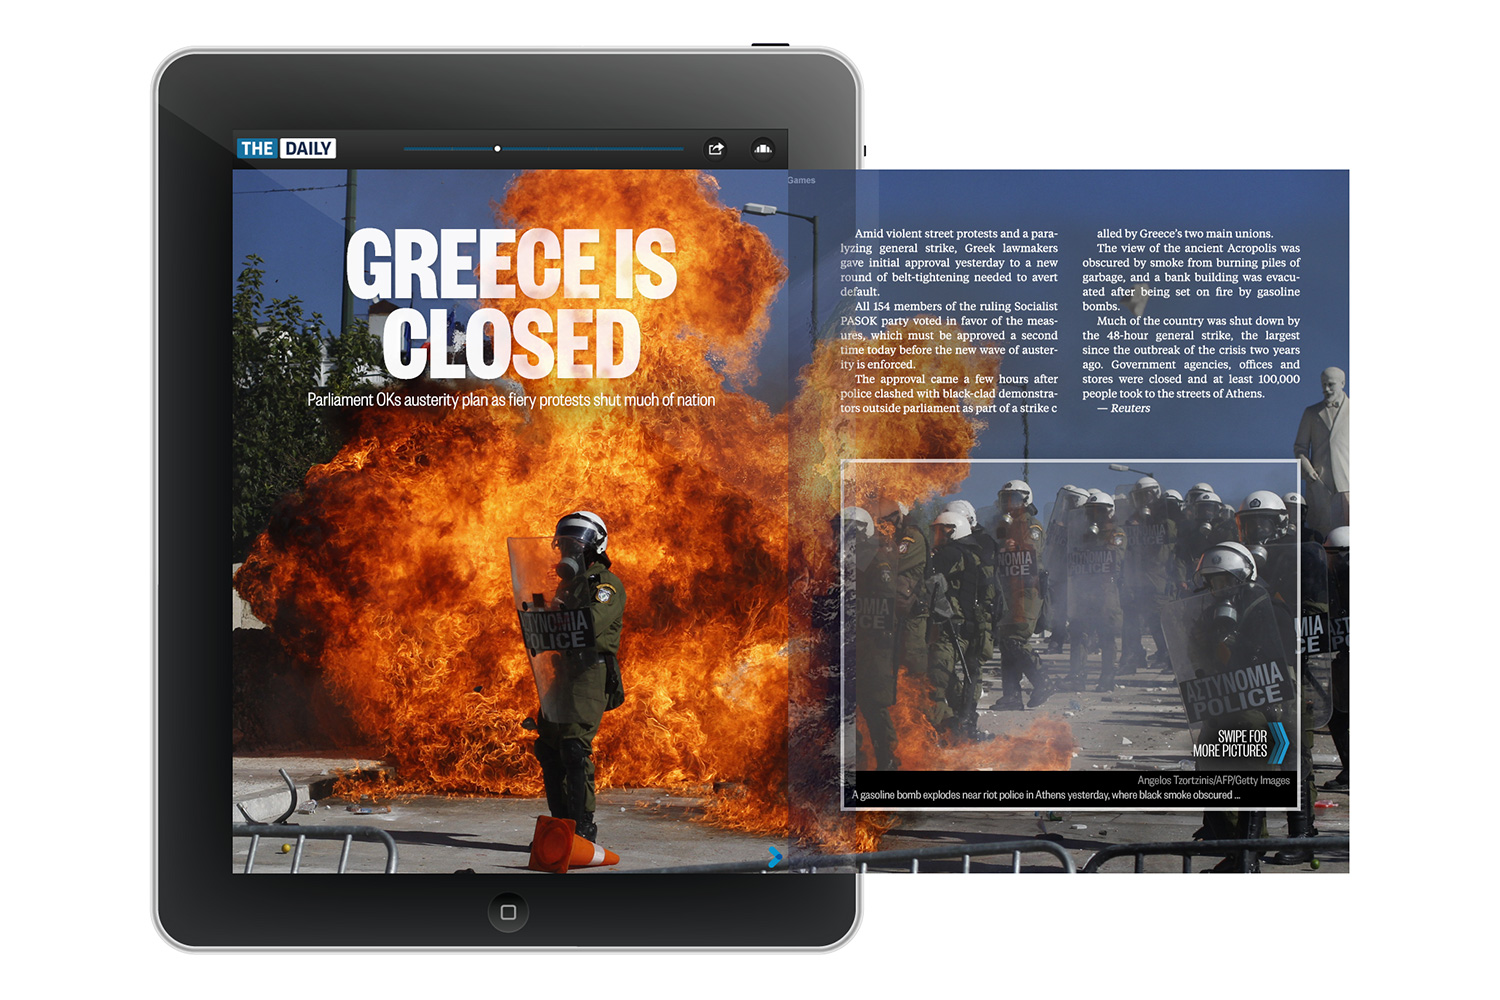 102011-news-greece-strike-v